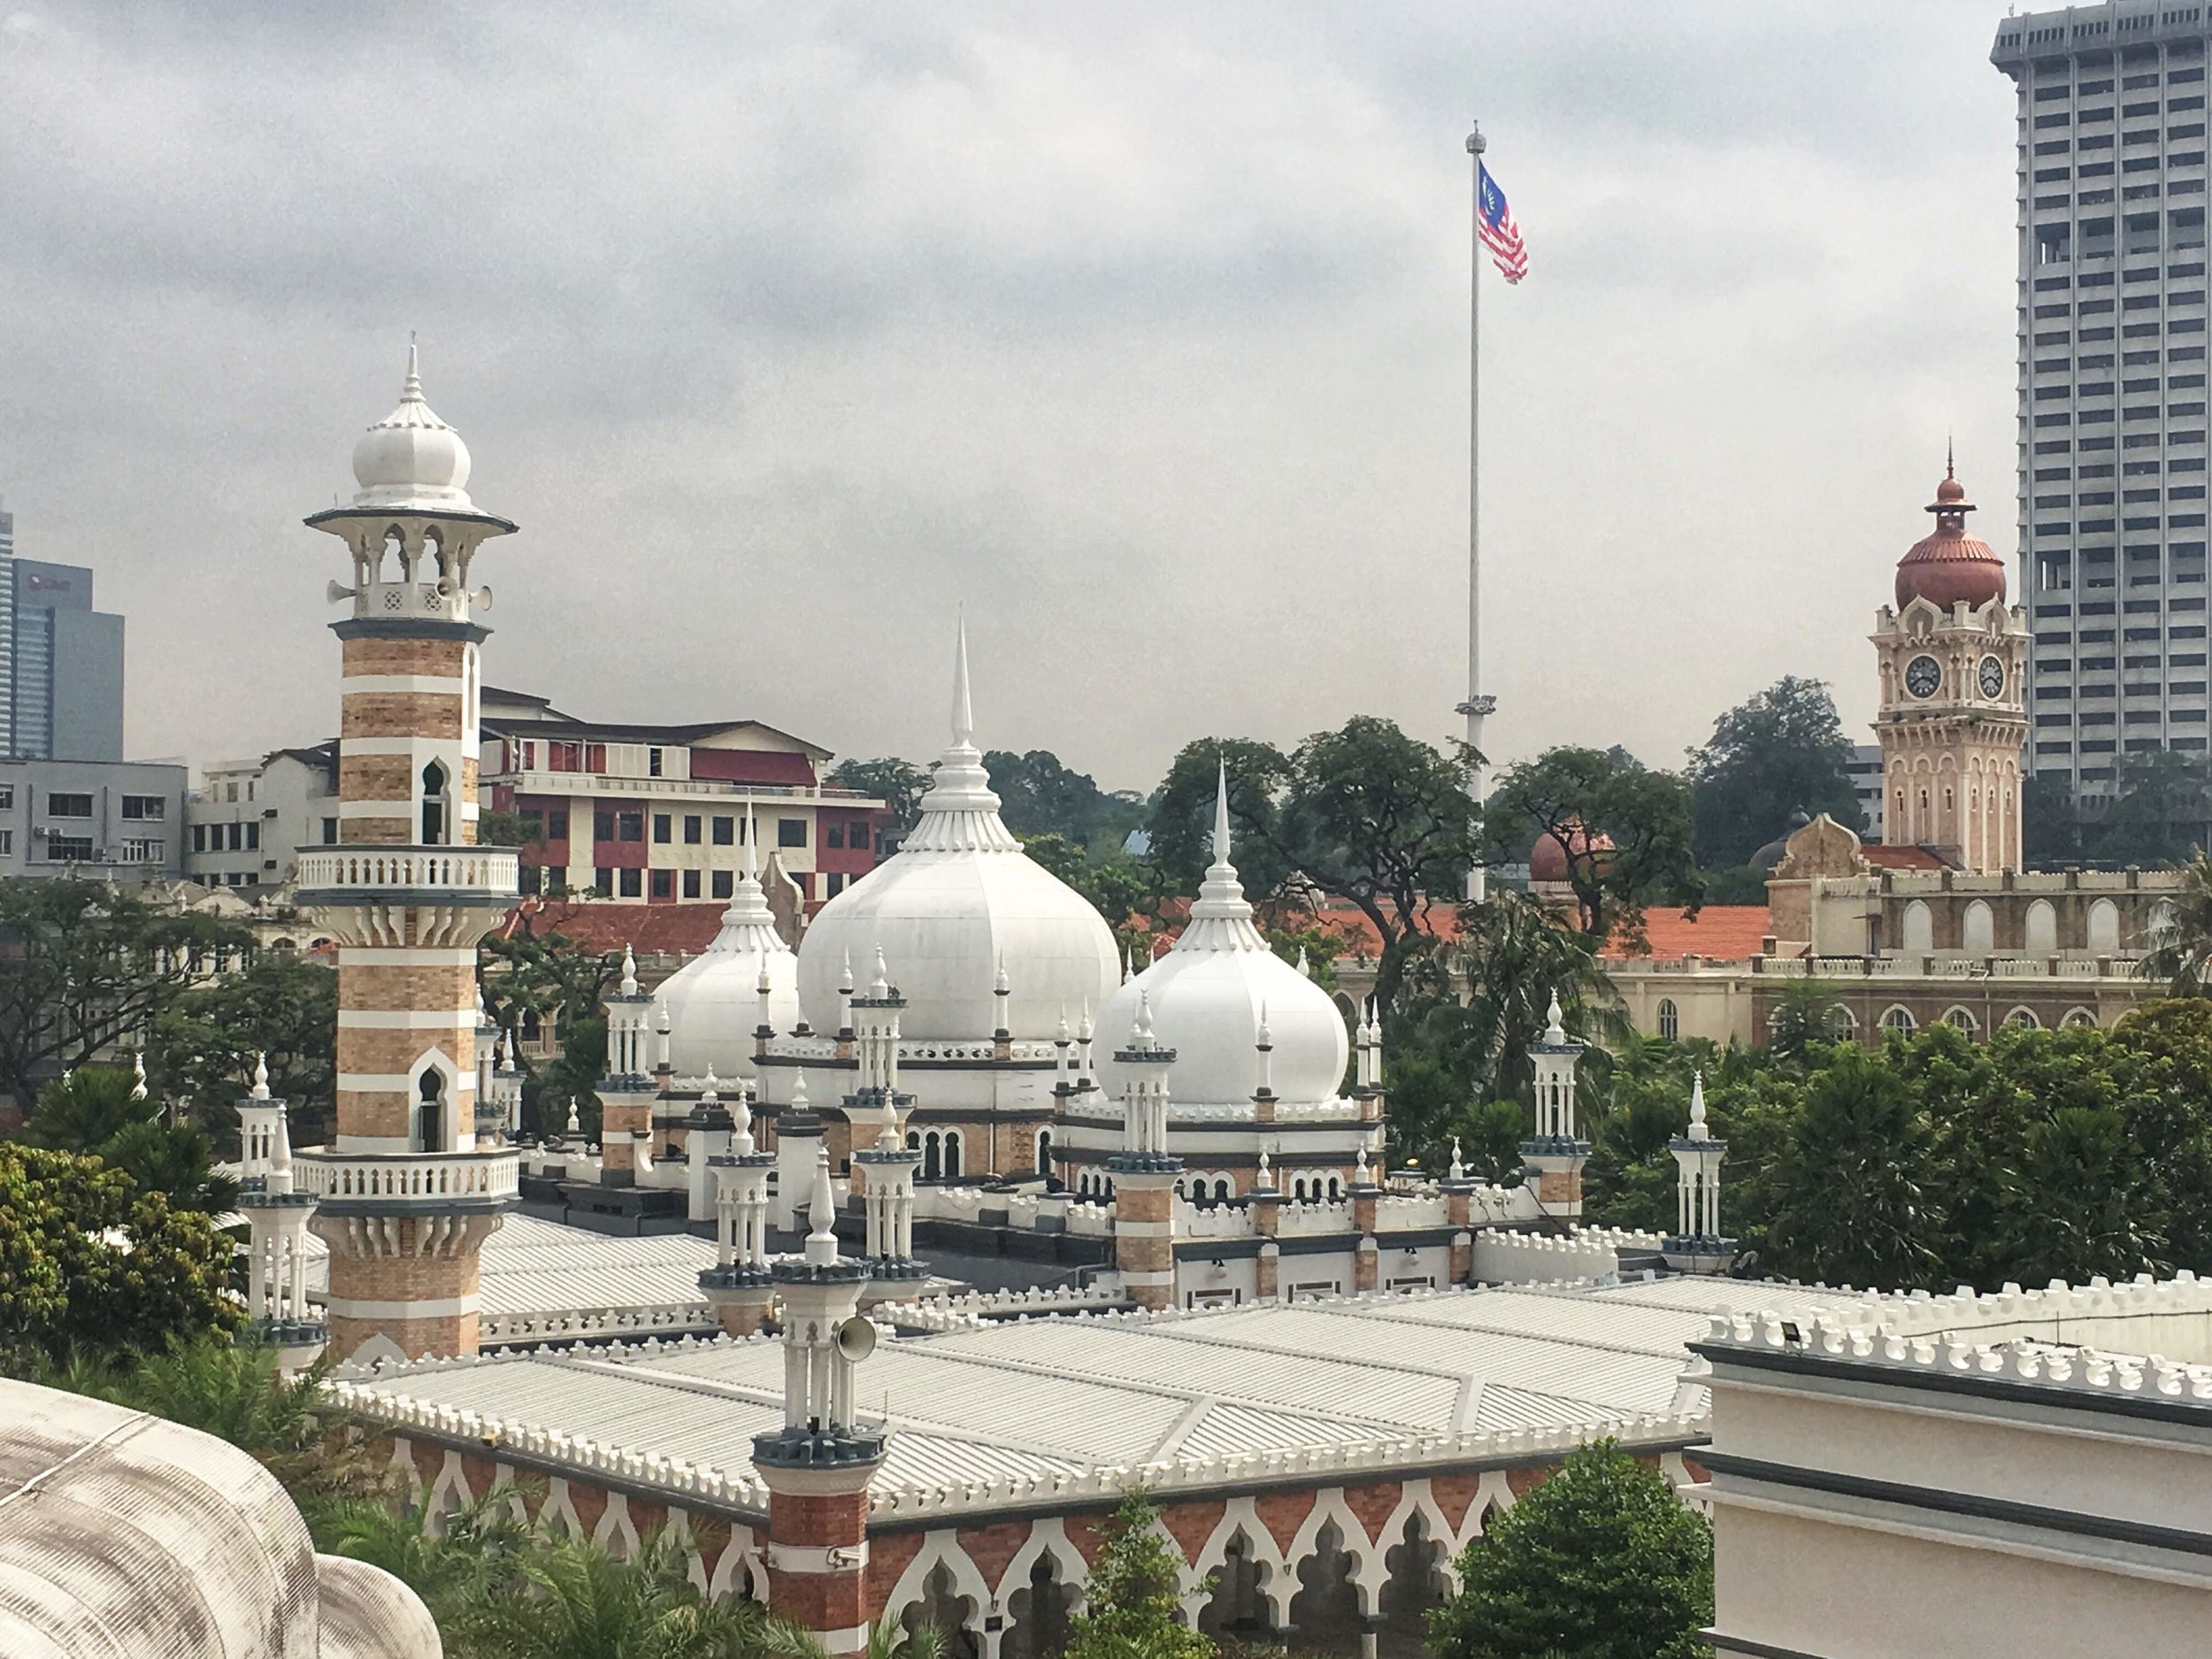 rooftop of Masjid Jamek with the Malaysian flag flying in the background